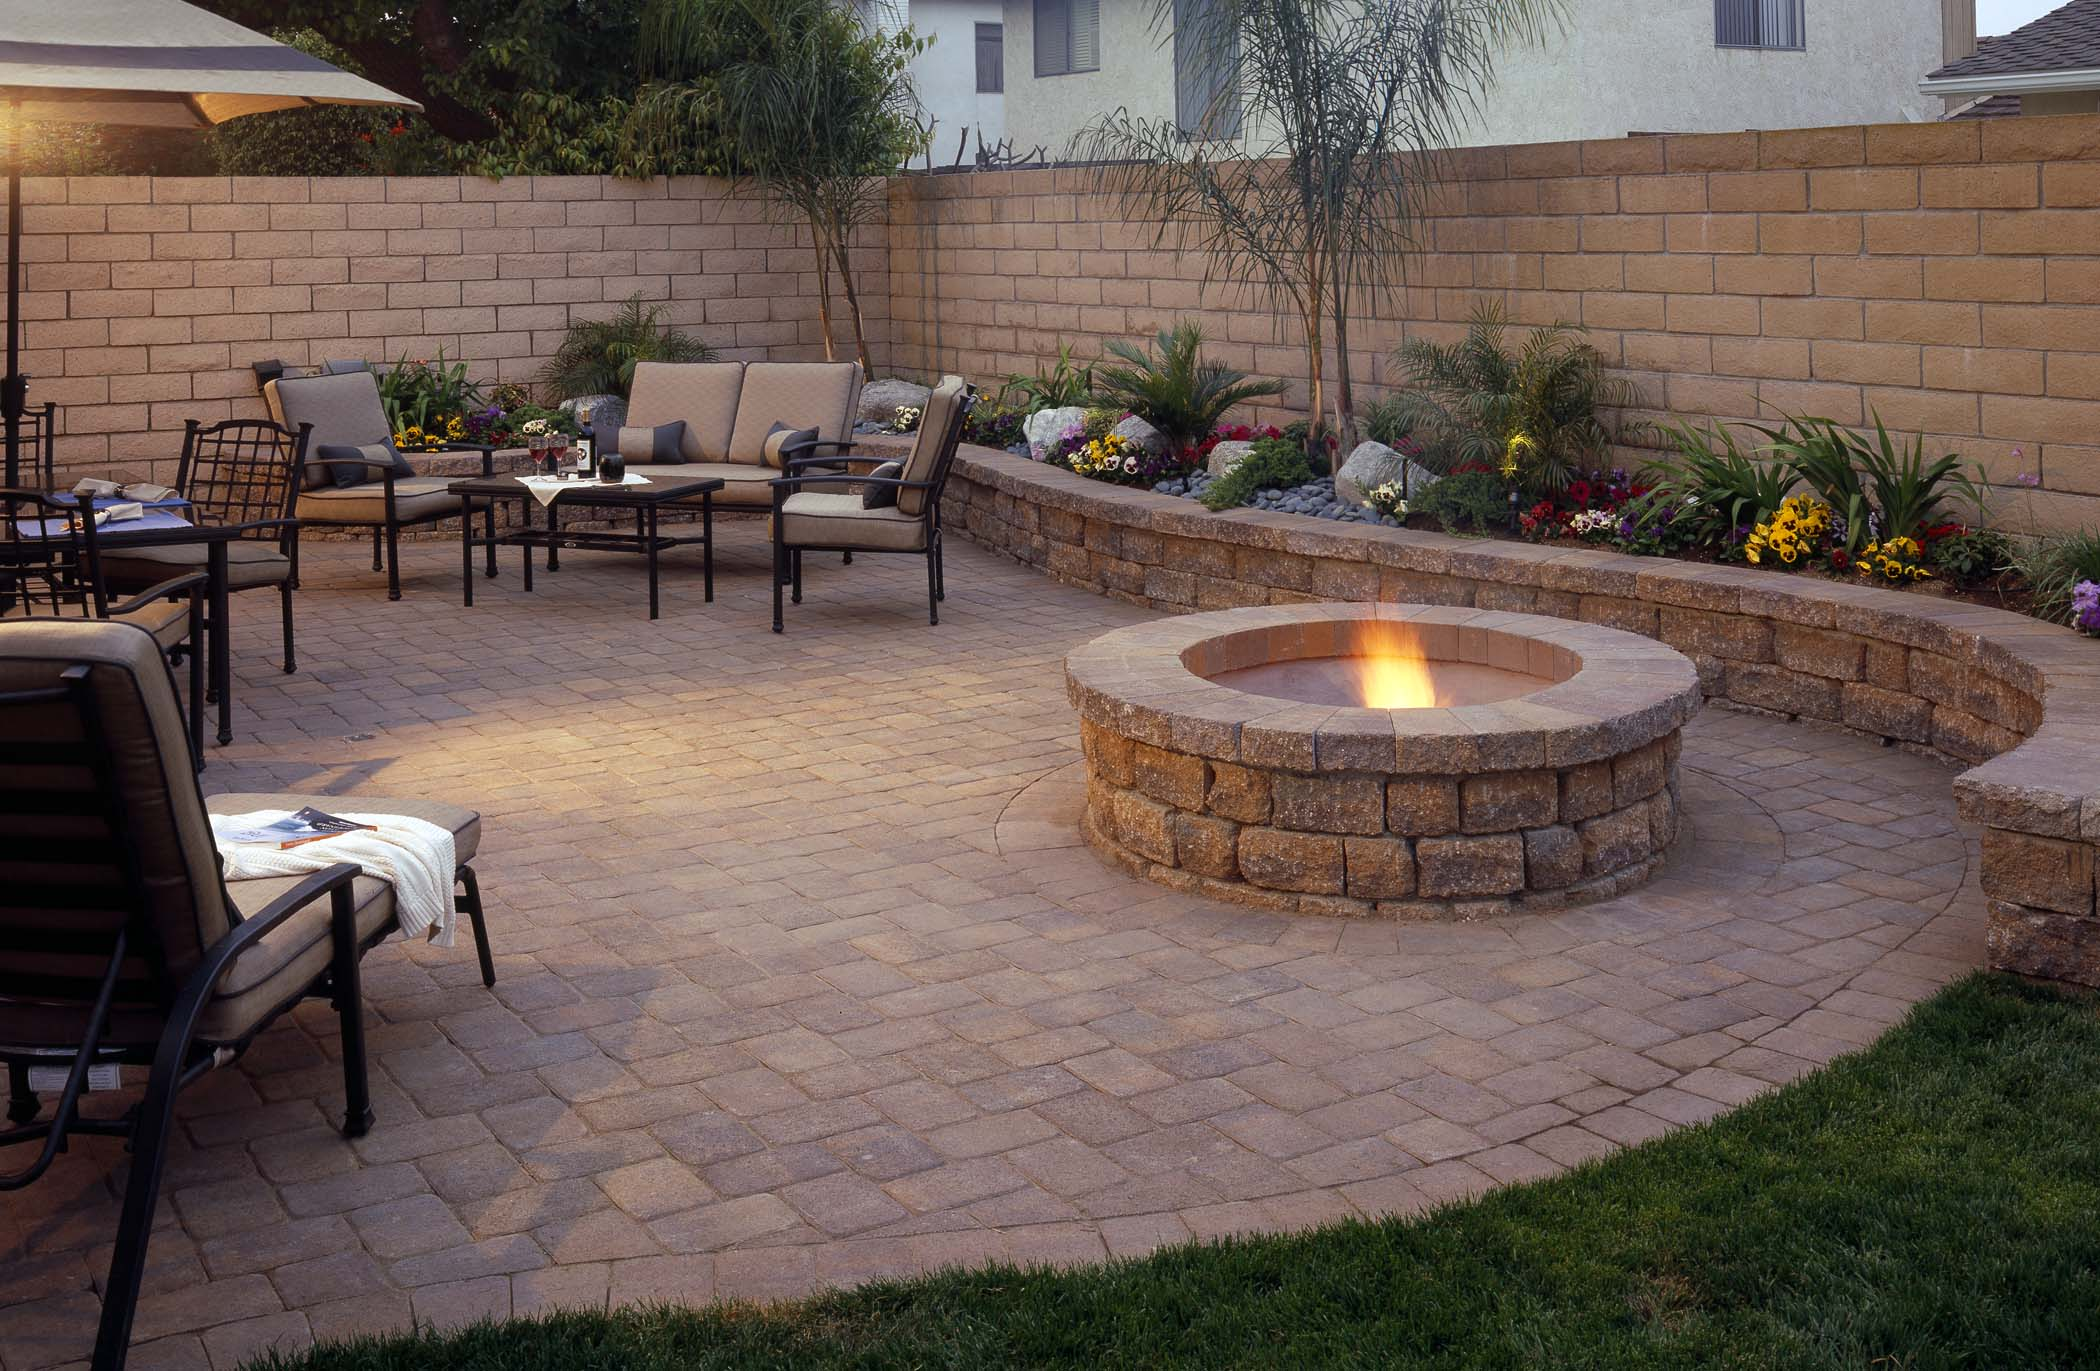 Projects - Hardscape projects take off in the winter time. Add a patio, fire pit, or even a walkway to extend your home!